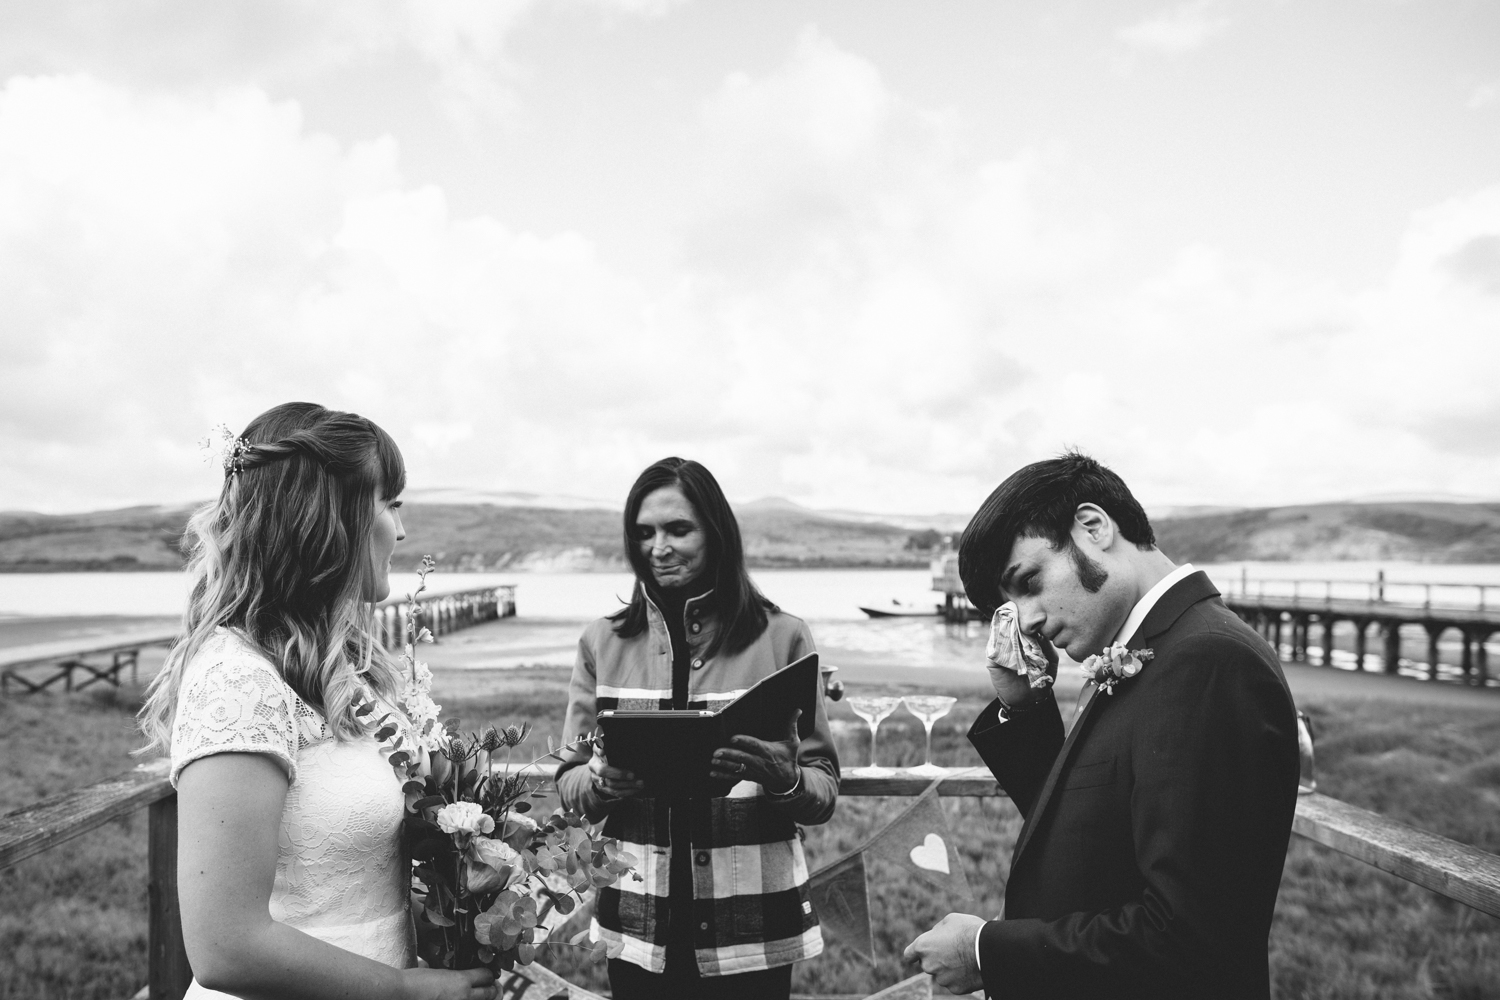 Point Reyes Inverness Wedding Photographer Rachelle Derouin-39.jpg